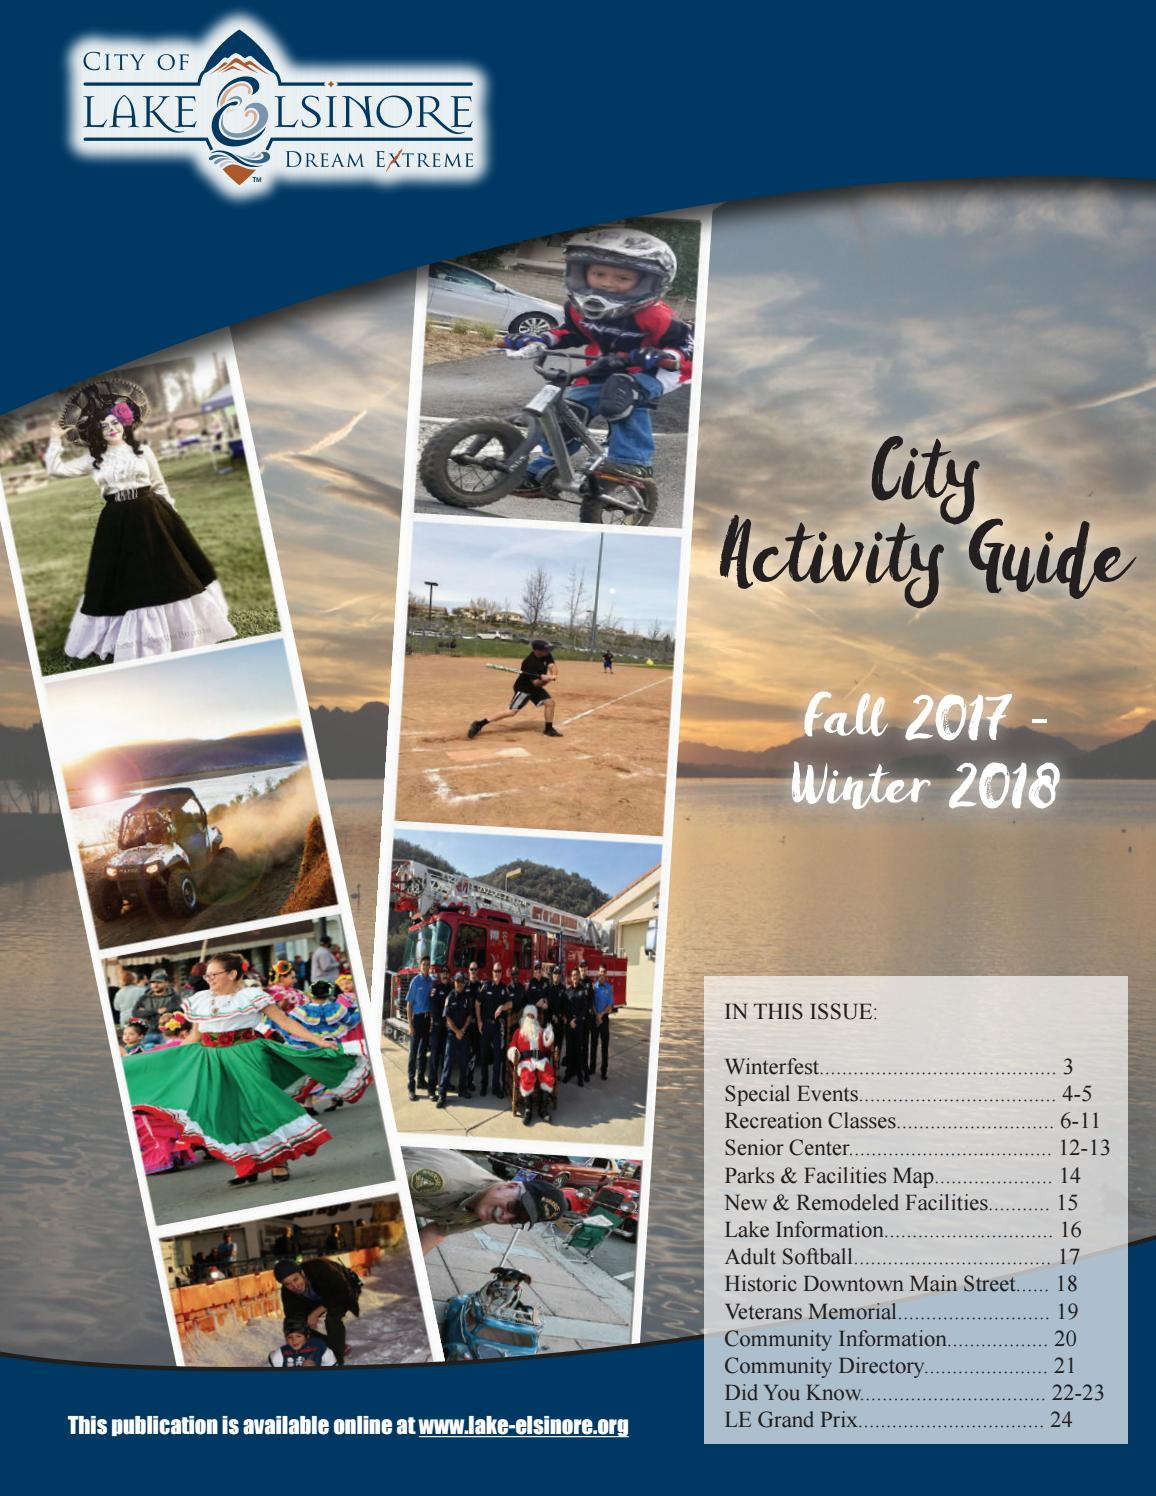 Fall 2017 and Winter 2018 City Activity Guide by City of Lake